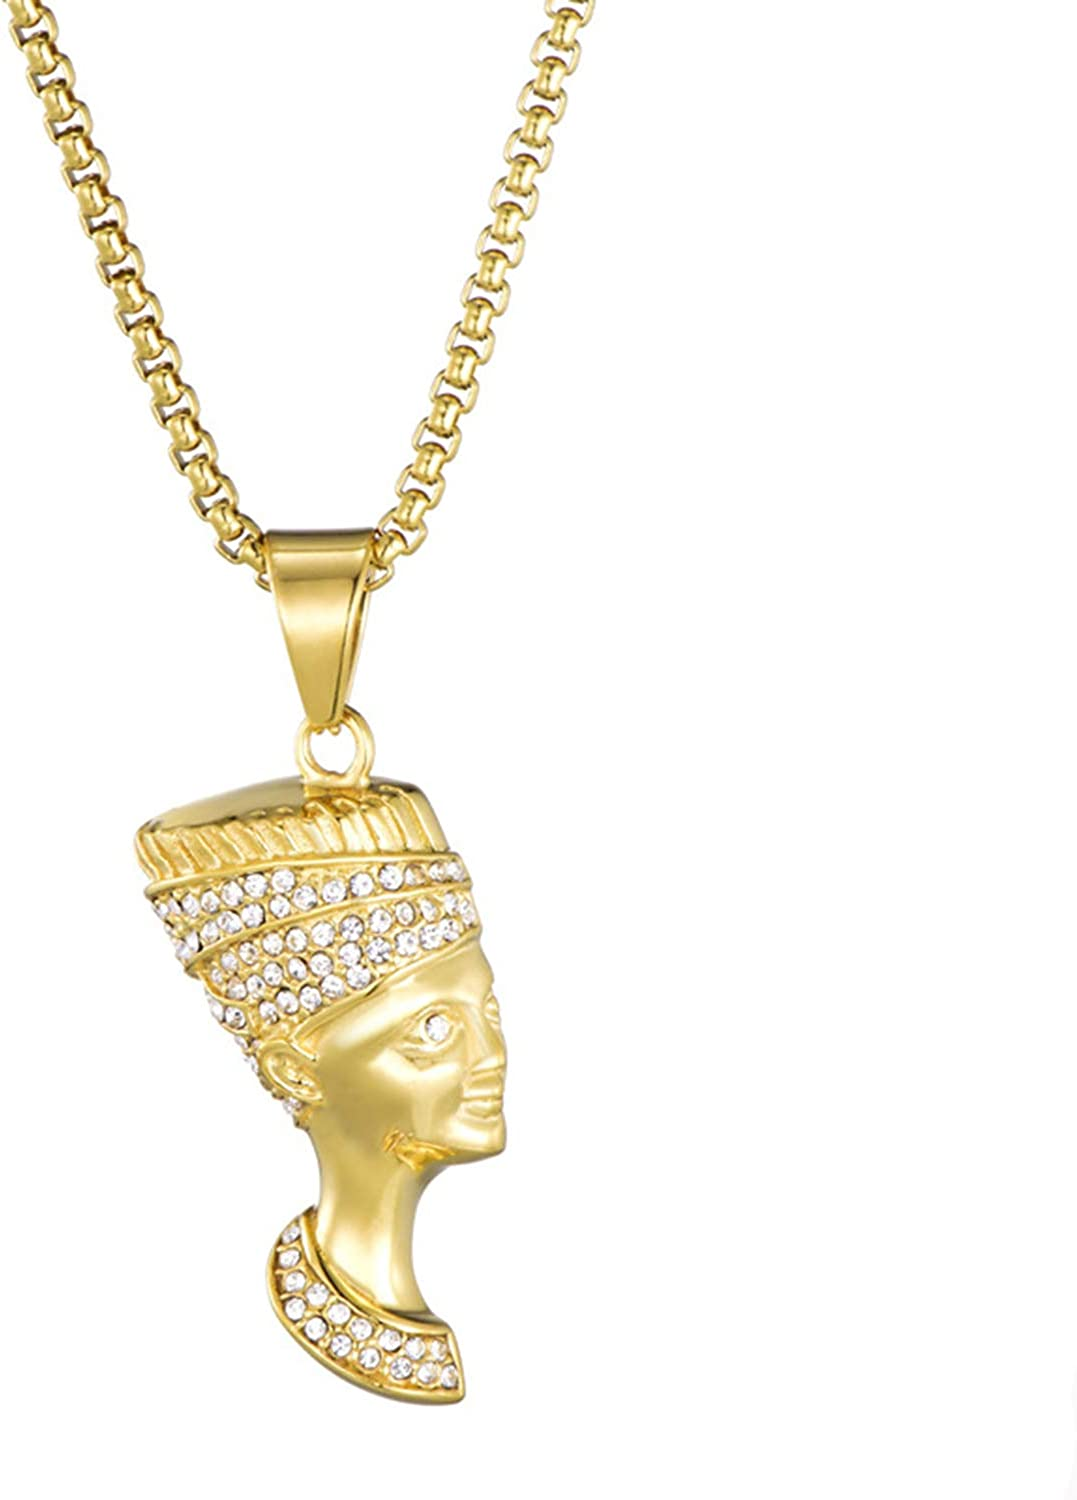 24 Inch Chain Egypt Queen Nefertiti Jewelry Lee Island Fashion 24K Gold Plated Cleopatra Egyptian Pendant Stainless Steel Necklace for Men Women